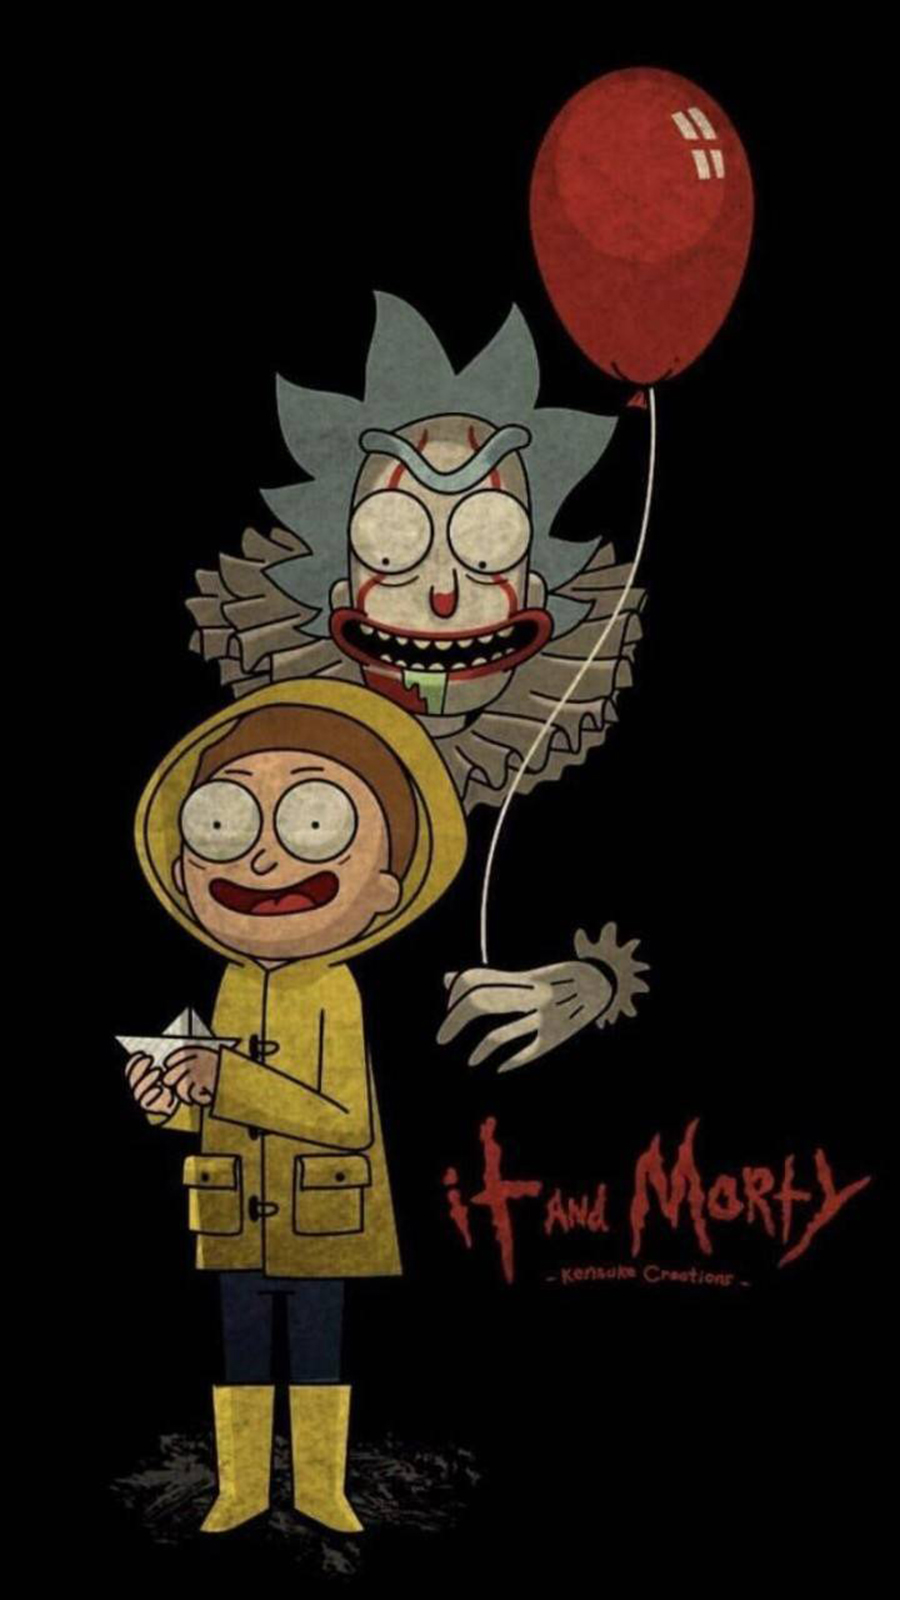 Rick and Morty Full HD Wallpapers Now Download For Your Device